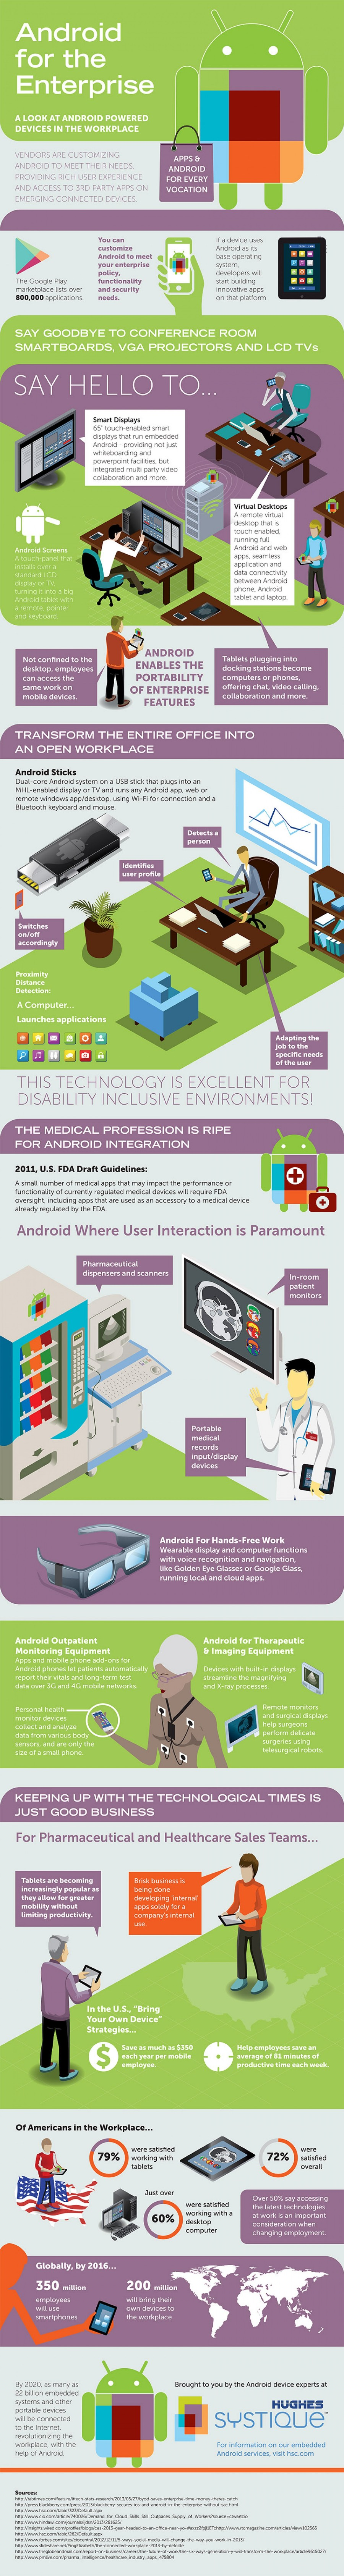 the-androidpowered-workplace_5293bc4b3f885_w1500